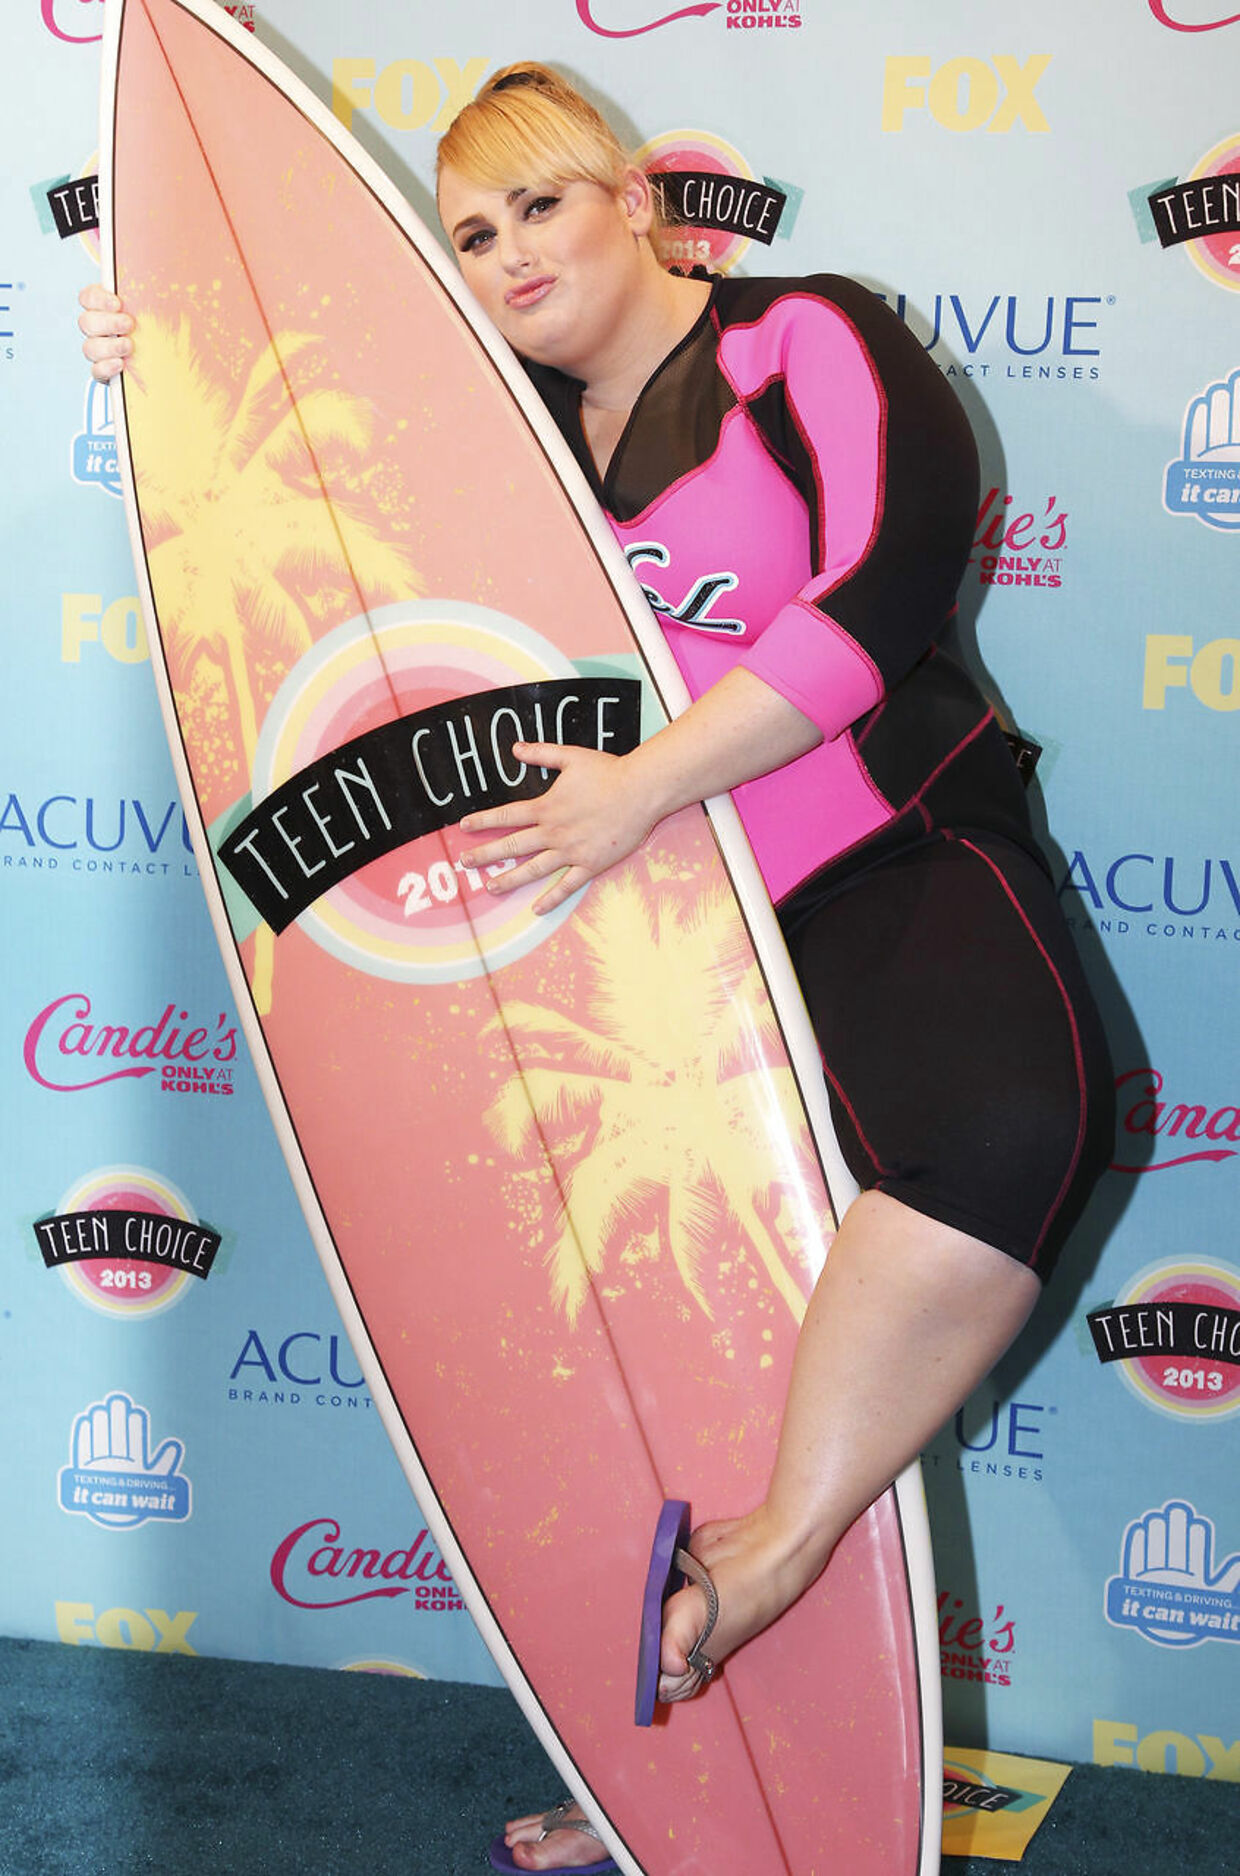 Rebel Wilson fotograferet i forbindelse med en Teen Choice Awards i 2013, hvor hun vandt en pris for sin rolle som Fat Amy.